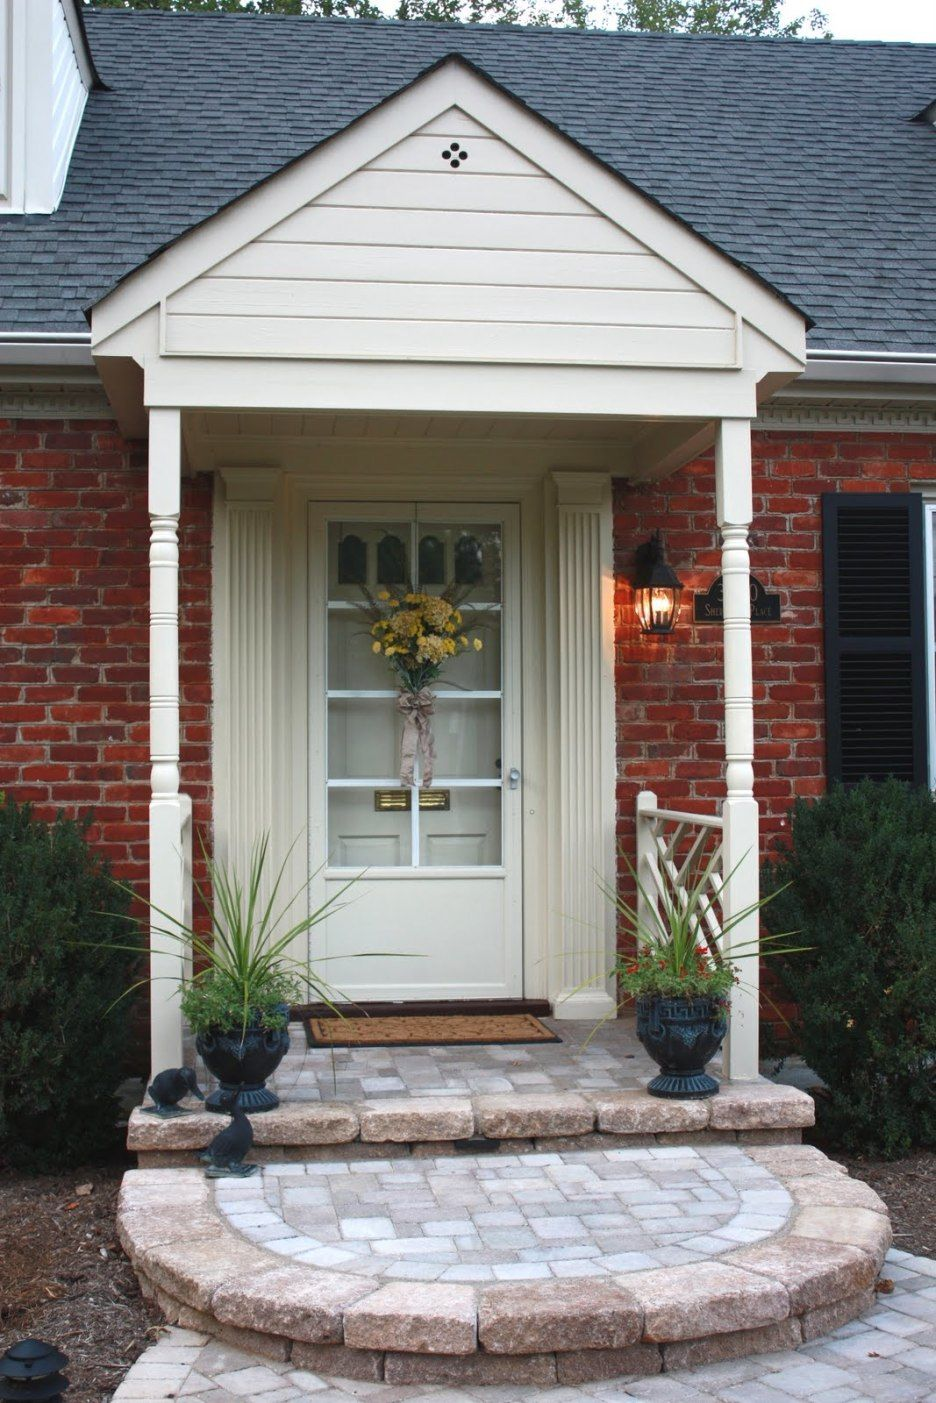 Small Front Porches Designs Front Porch Steps Porch Design: Small Outside Entryway Design Ideas Spring - Google Search